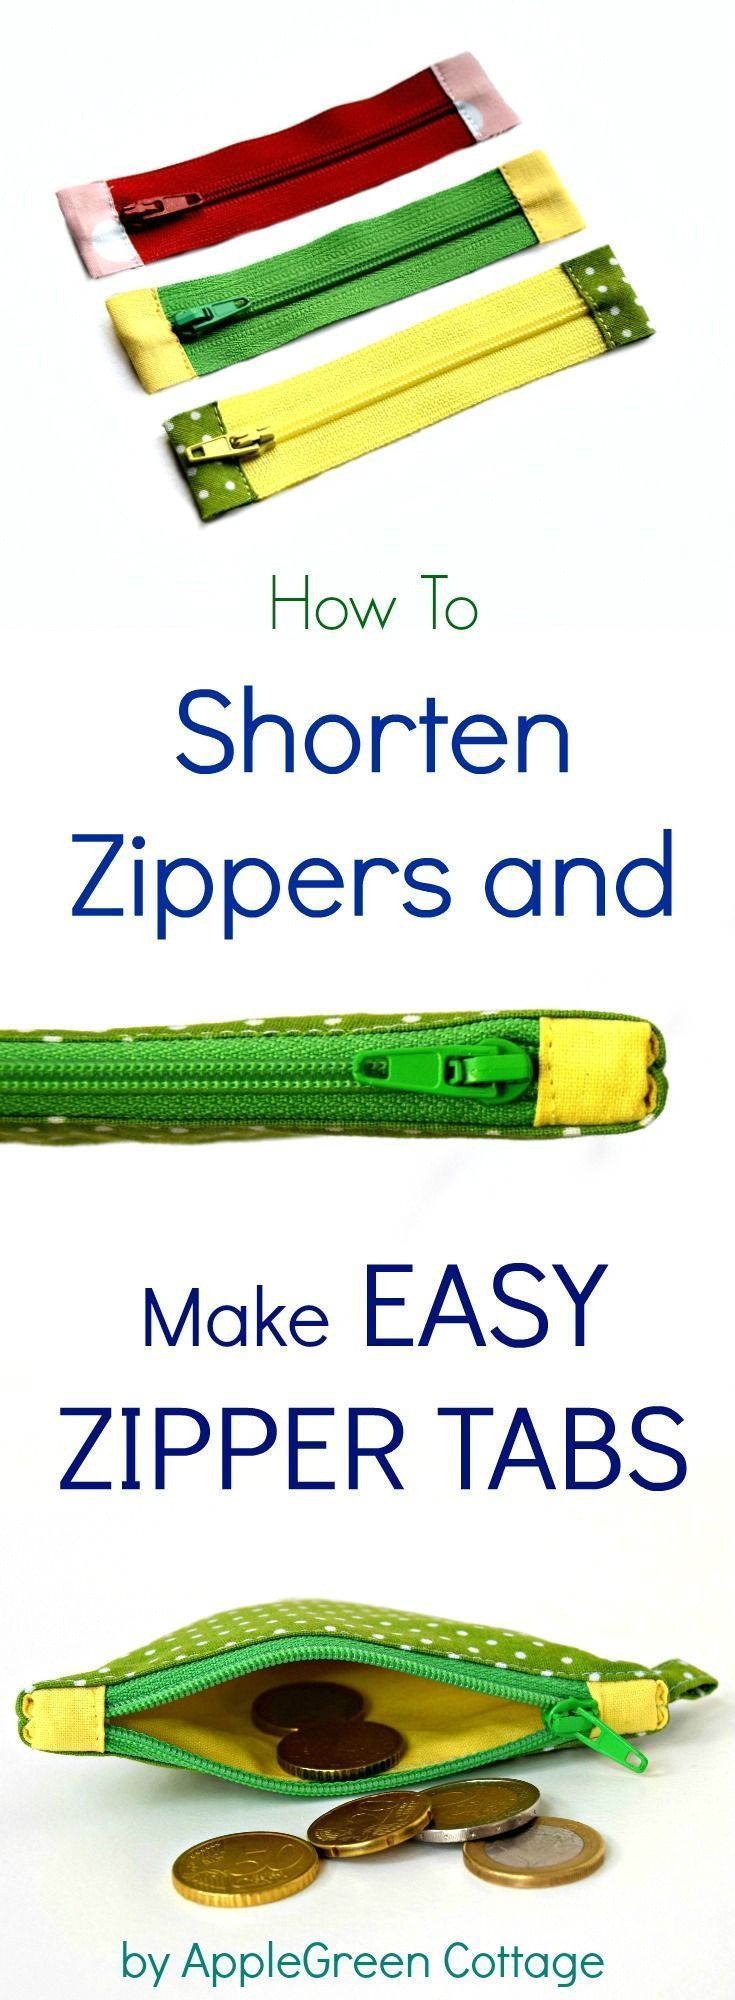 How To Shorten A Zipper  And Add Zipper Tabs - Sewing hacks, Sewing techniques, Easy sewing, Beginner sewing projects easy, Sewing projects for beginners, Sewing for beginners - Learn how to shorten a zipper and how to make zipper tabs  the easy way!